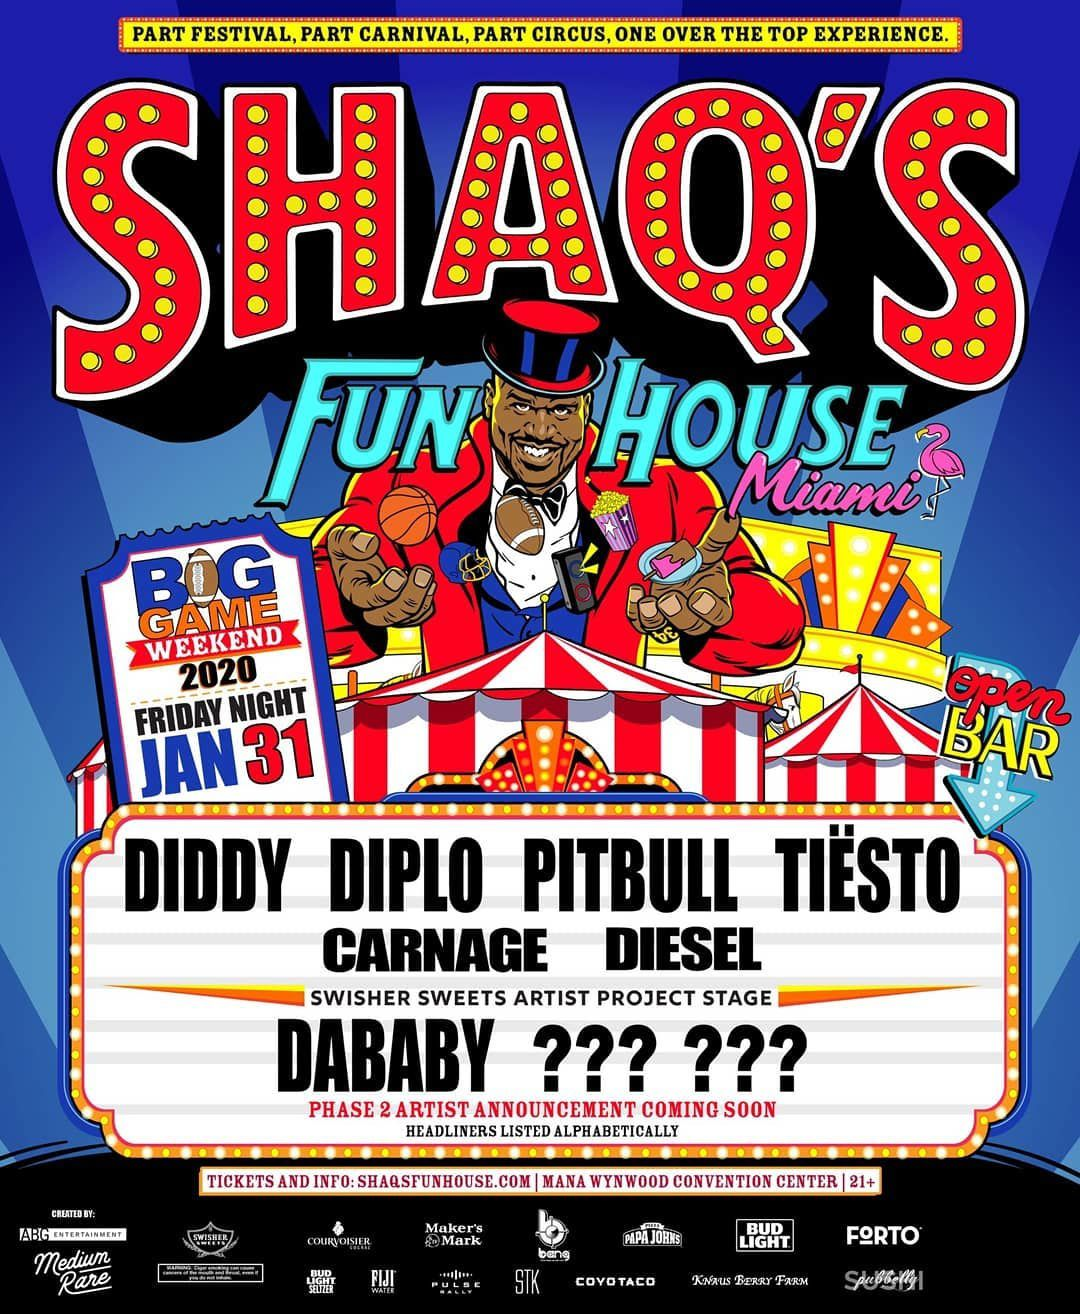 Tiësto date | Shaq' s Fun House | Miami, FL - january 31, 2020